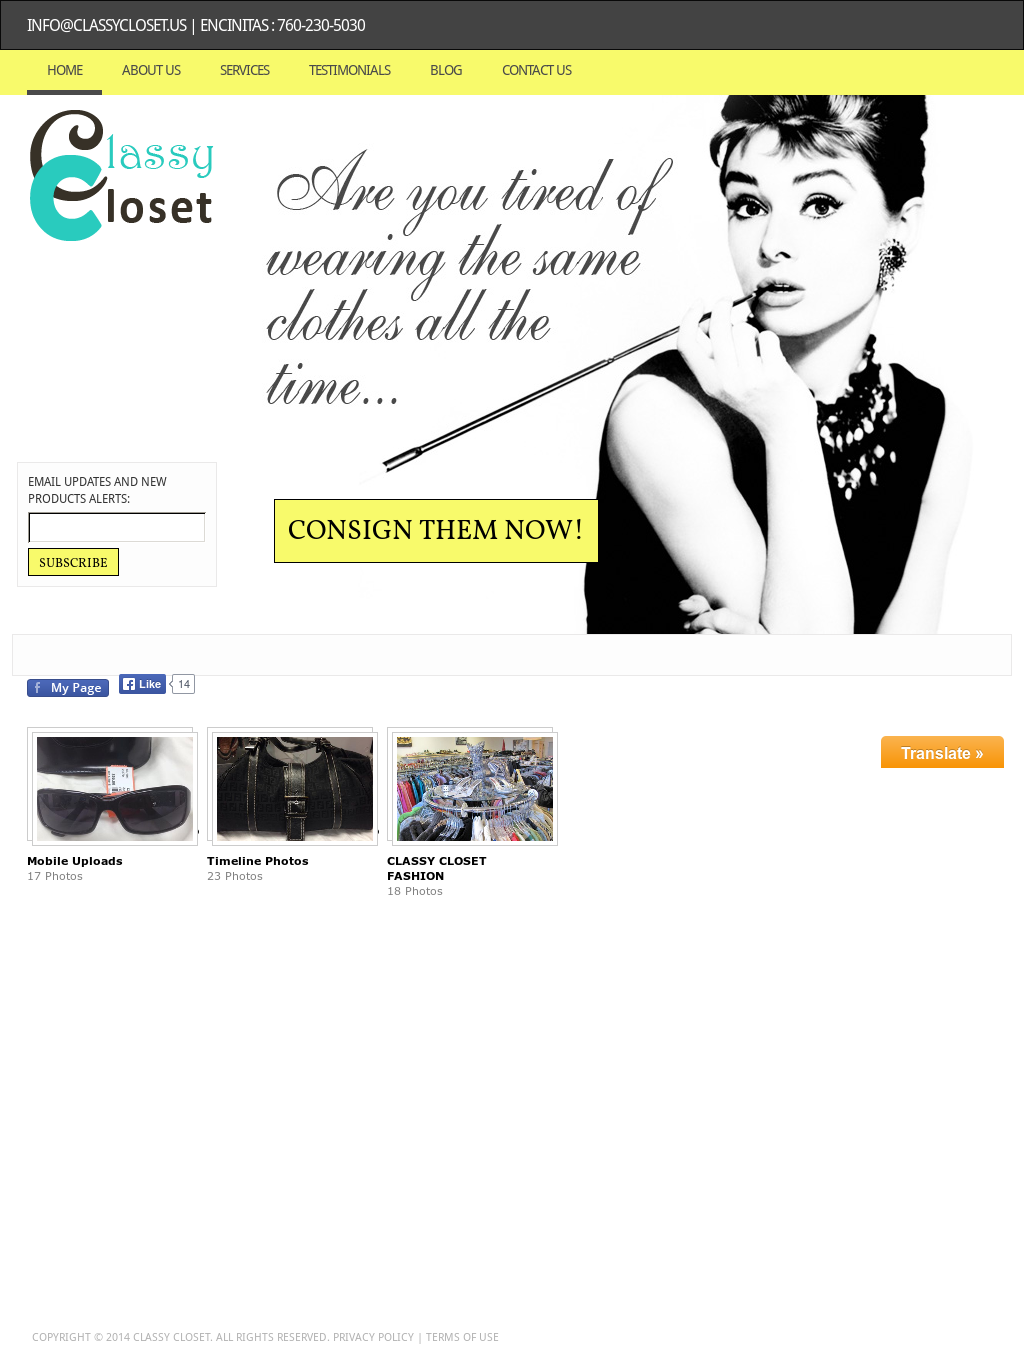 Classy Closet Consignment Boutique Website History